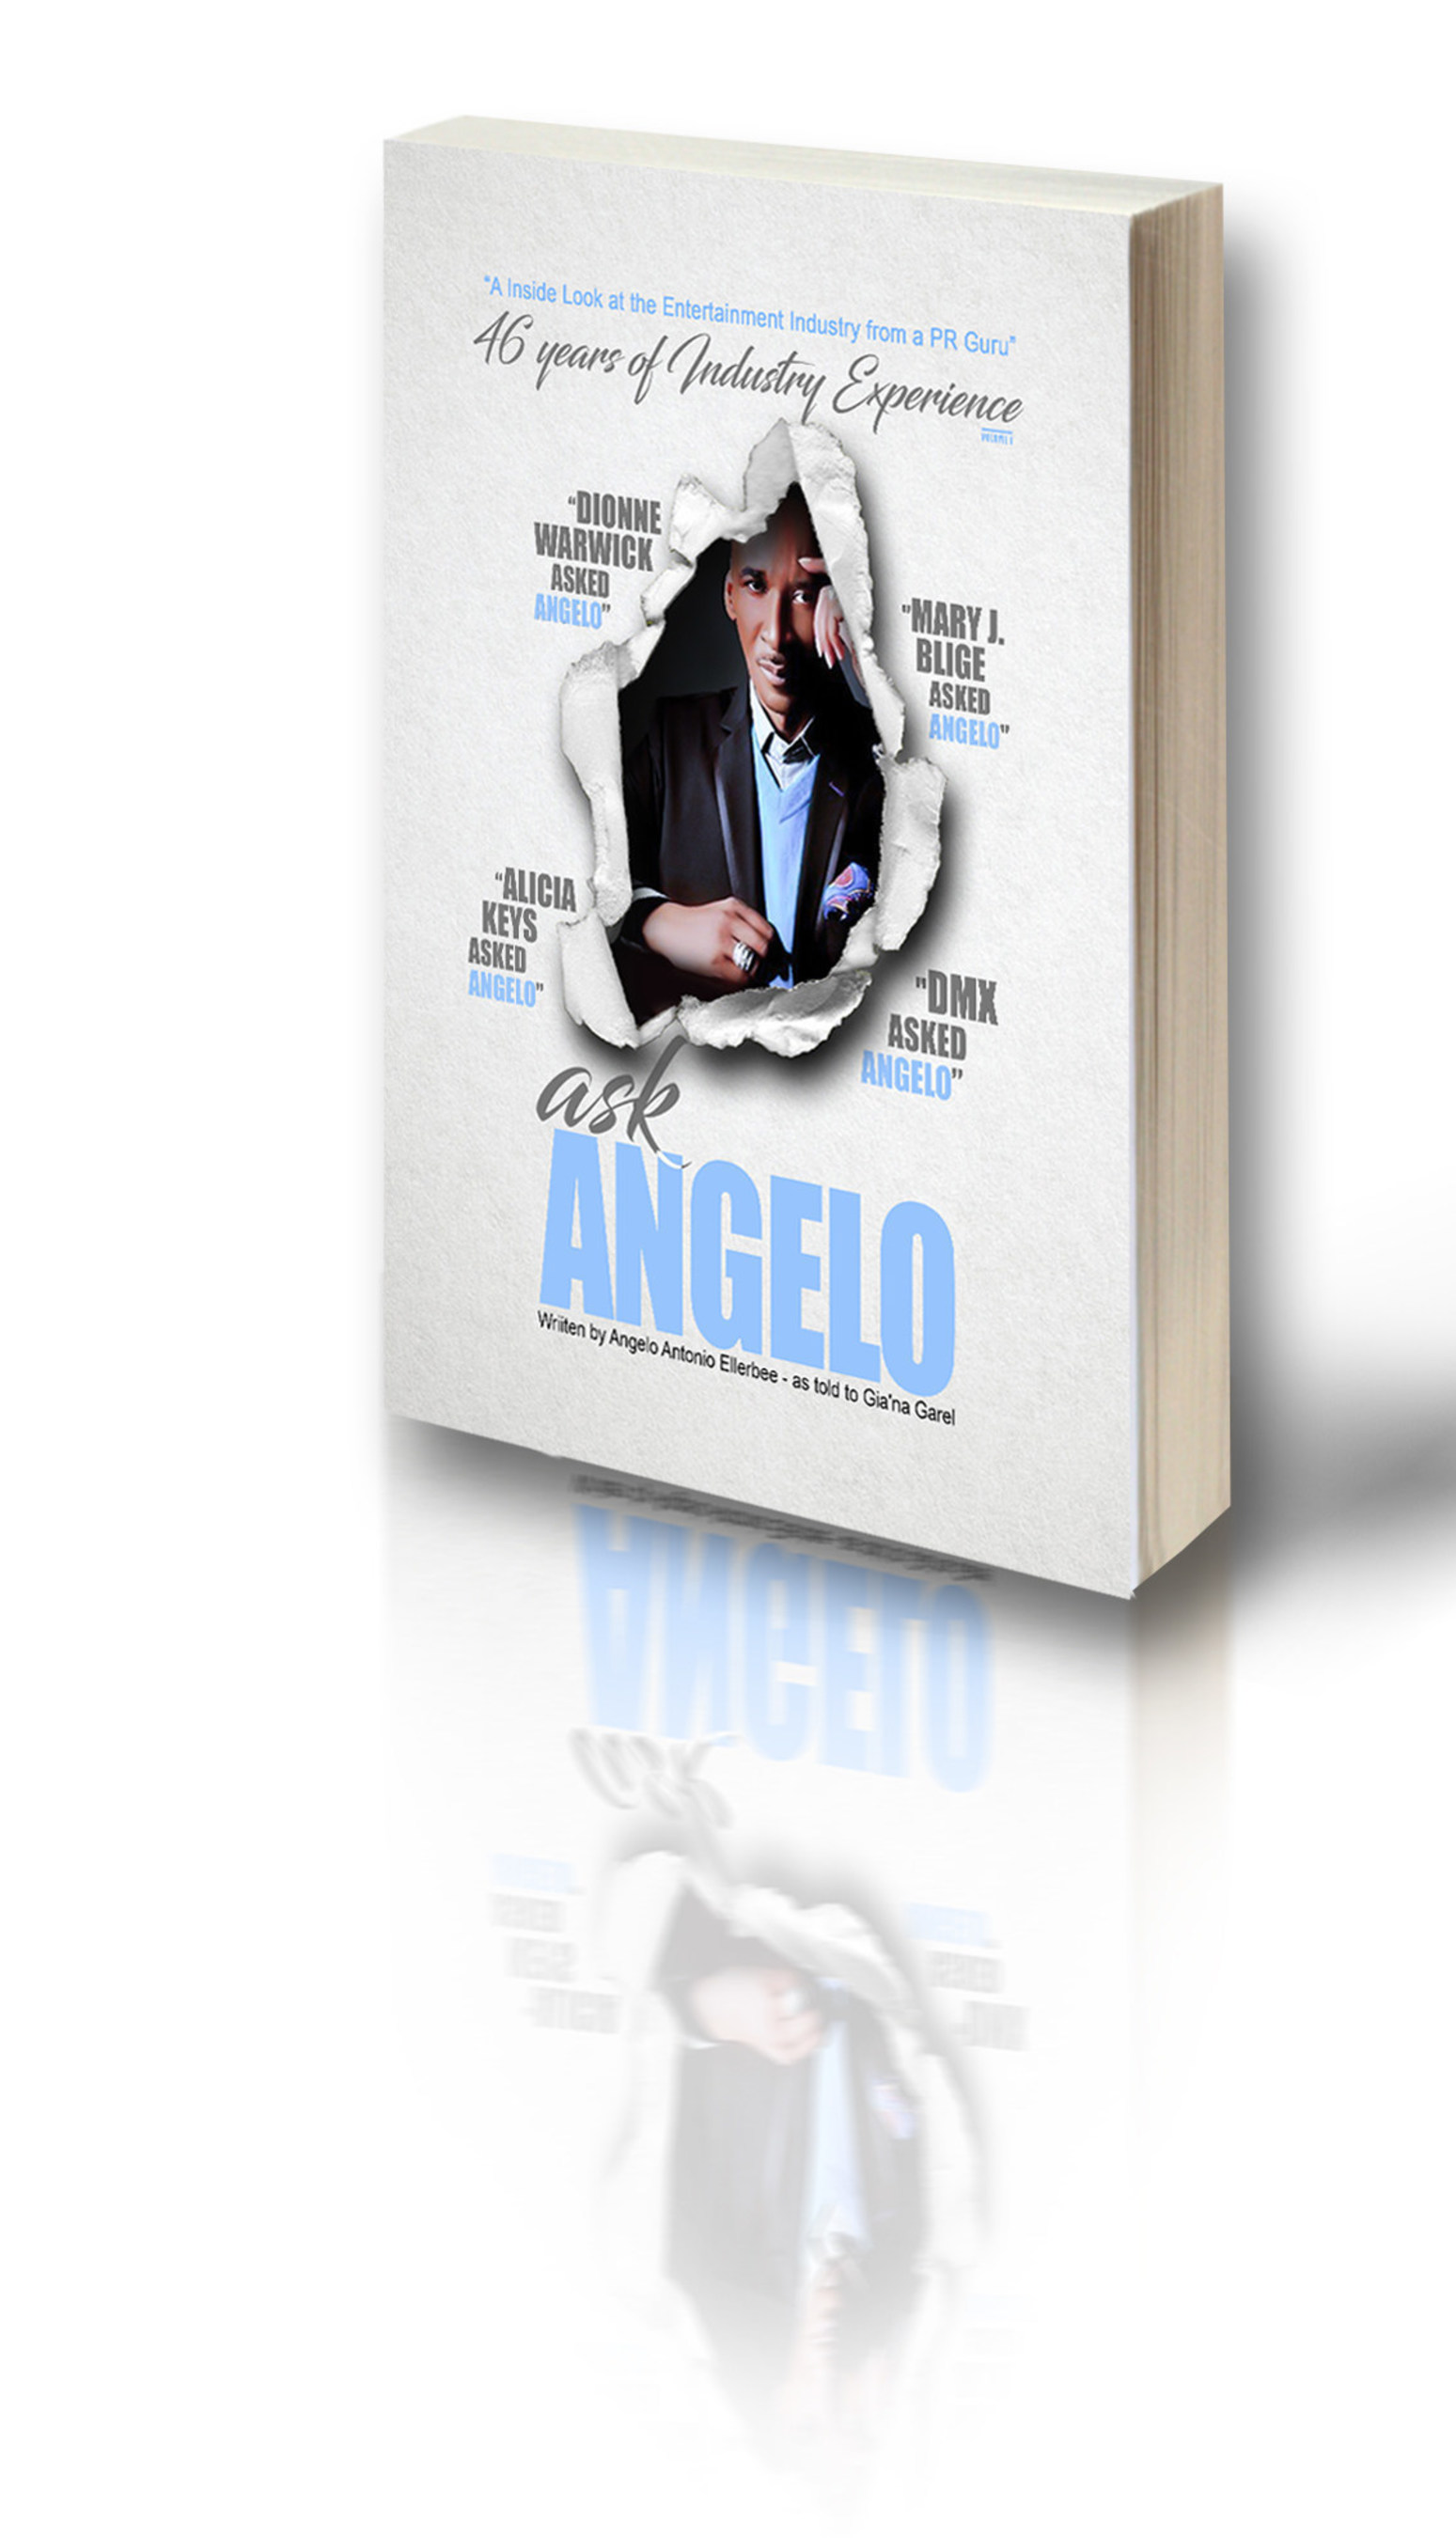 Dionne Warwick Presents PR Guru Angelo Ellerbee's New Book and Radio Show 'Ask Angelo'